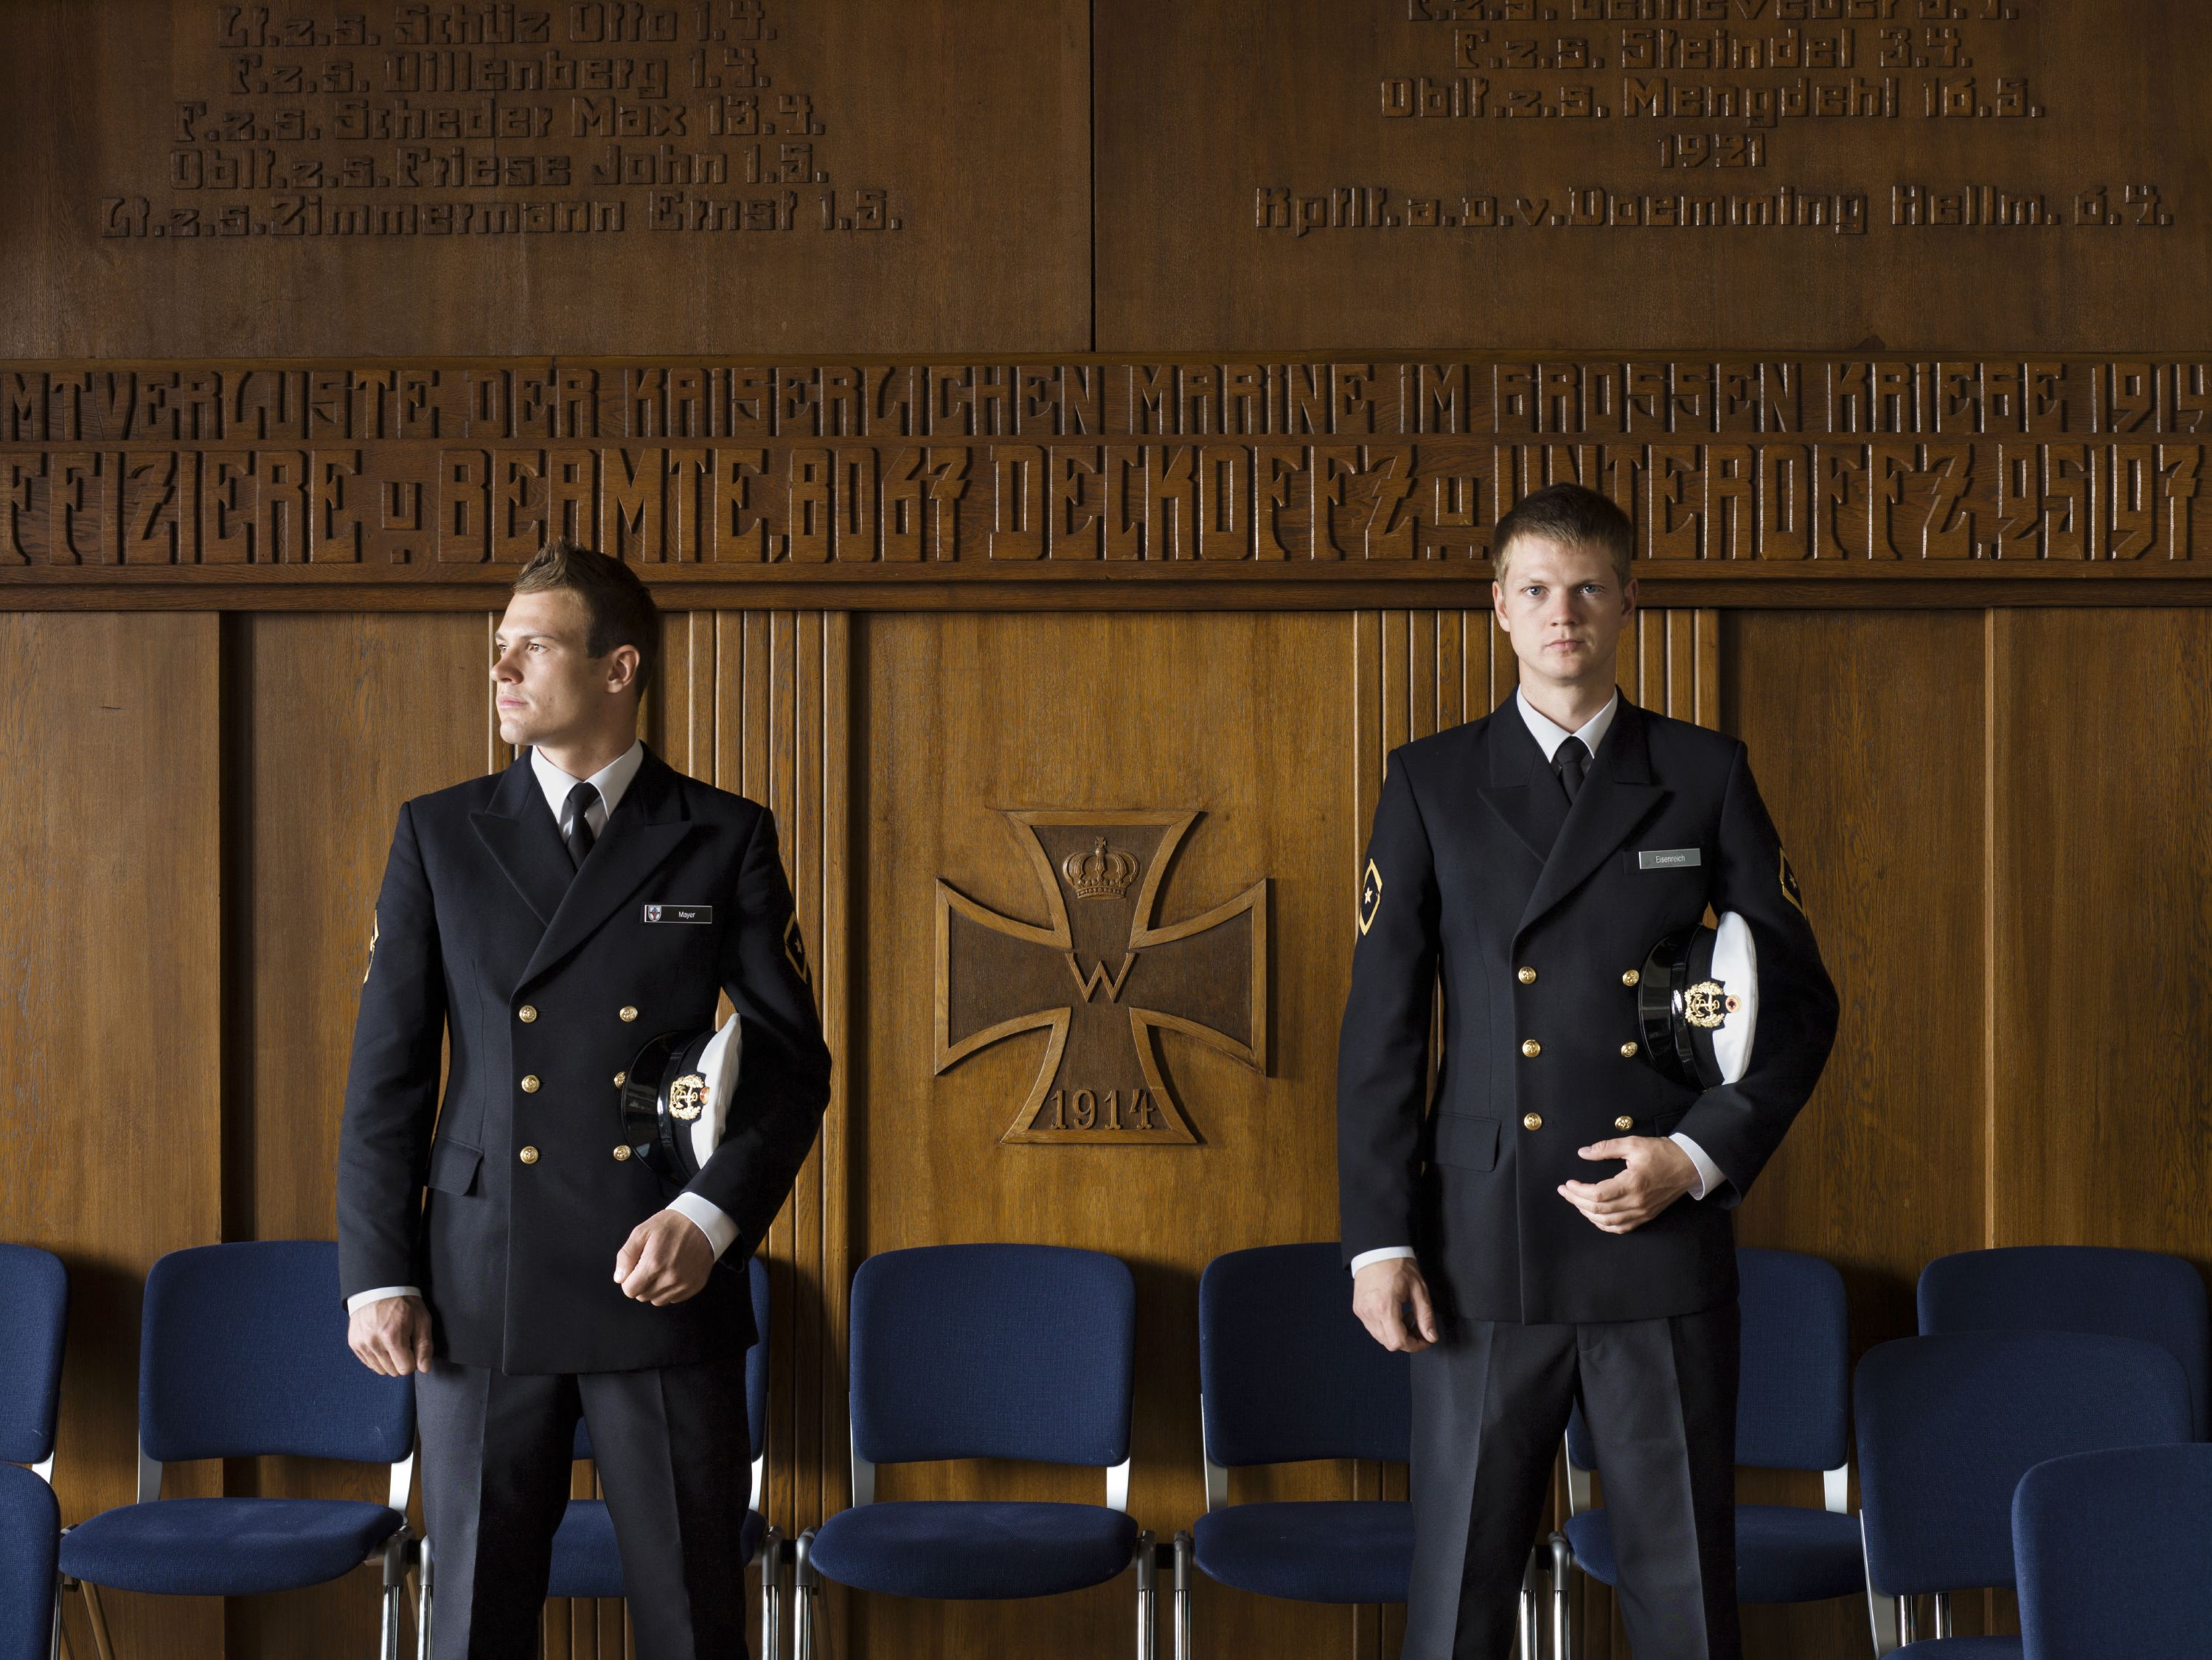 From left: Cadets Mayer and Eisenreich at Marineschule Mürwik, Mürwik, Germany,  July 19, 2011.